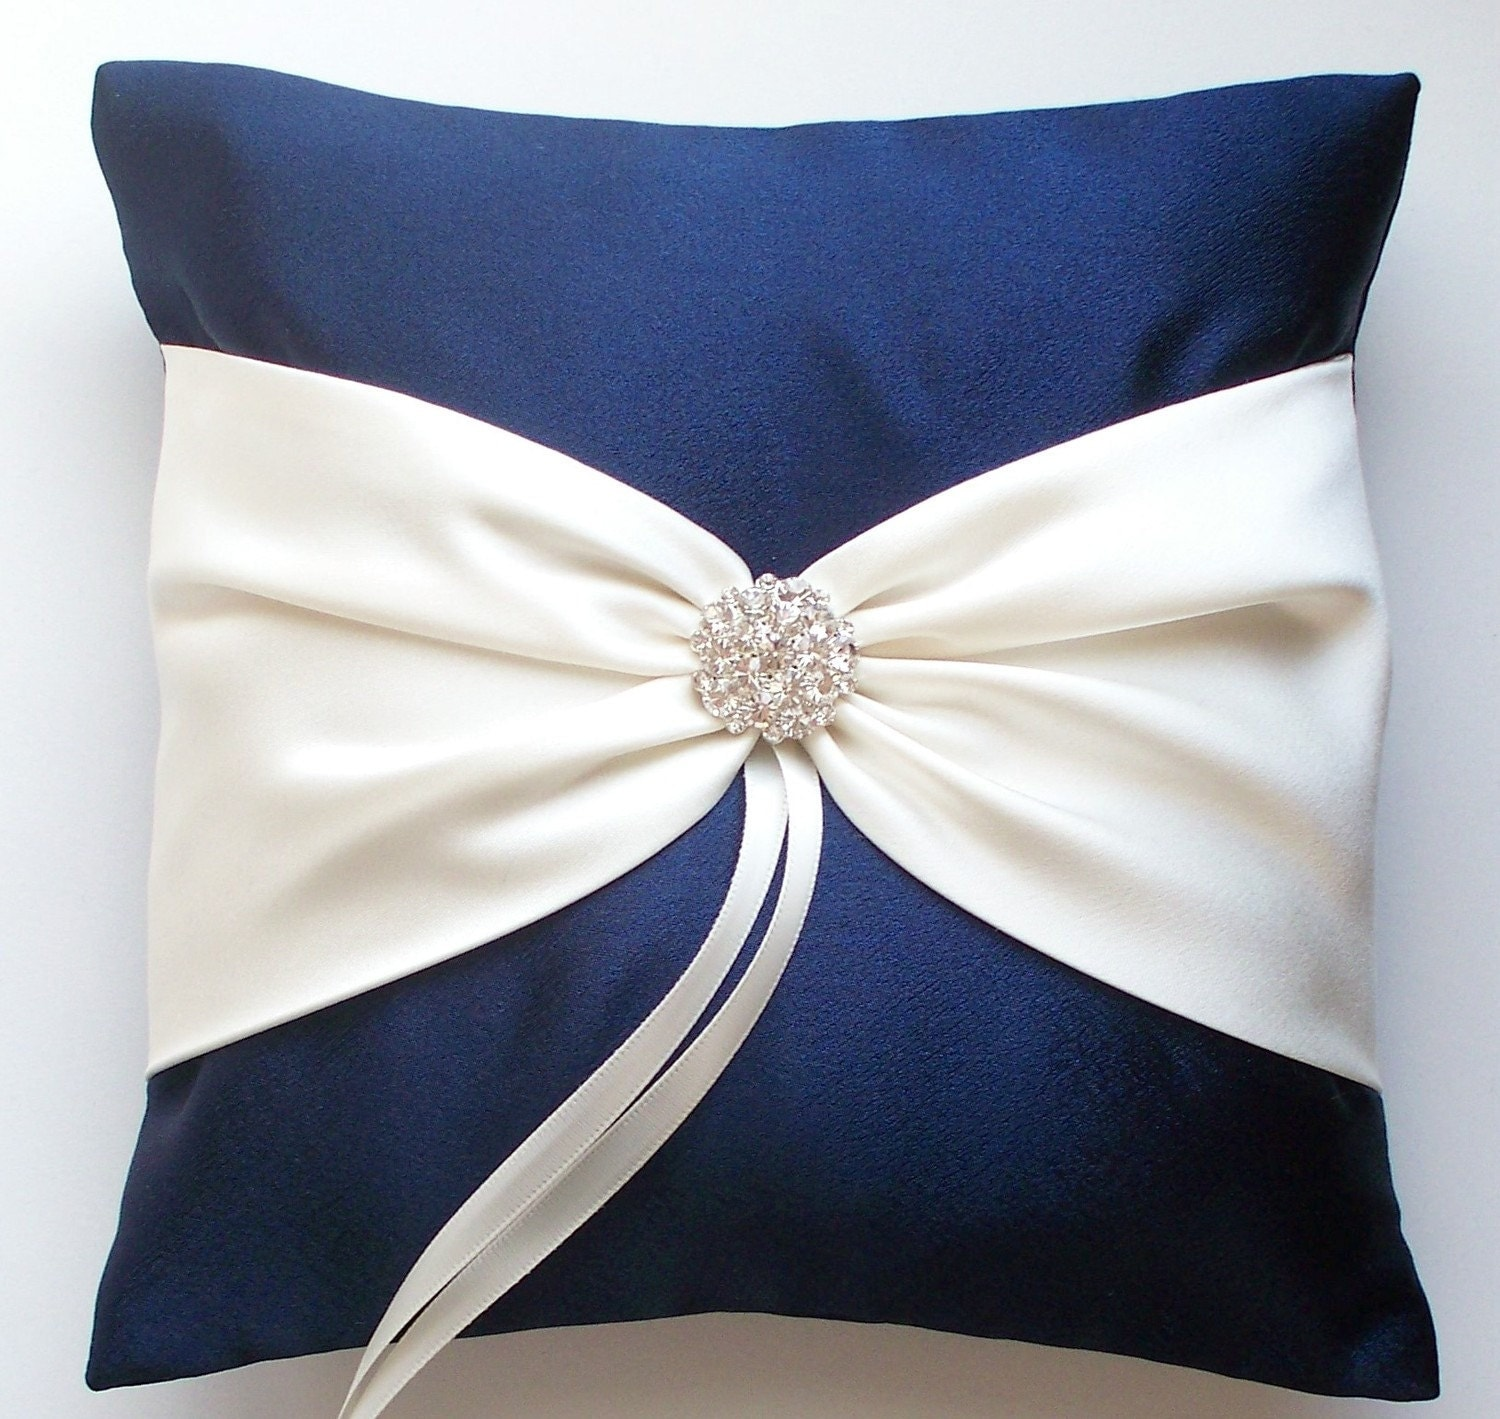 Wedding Ring Pillow in Navy with Ivory Sash Cinched with